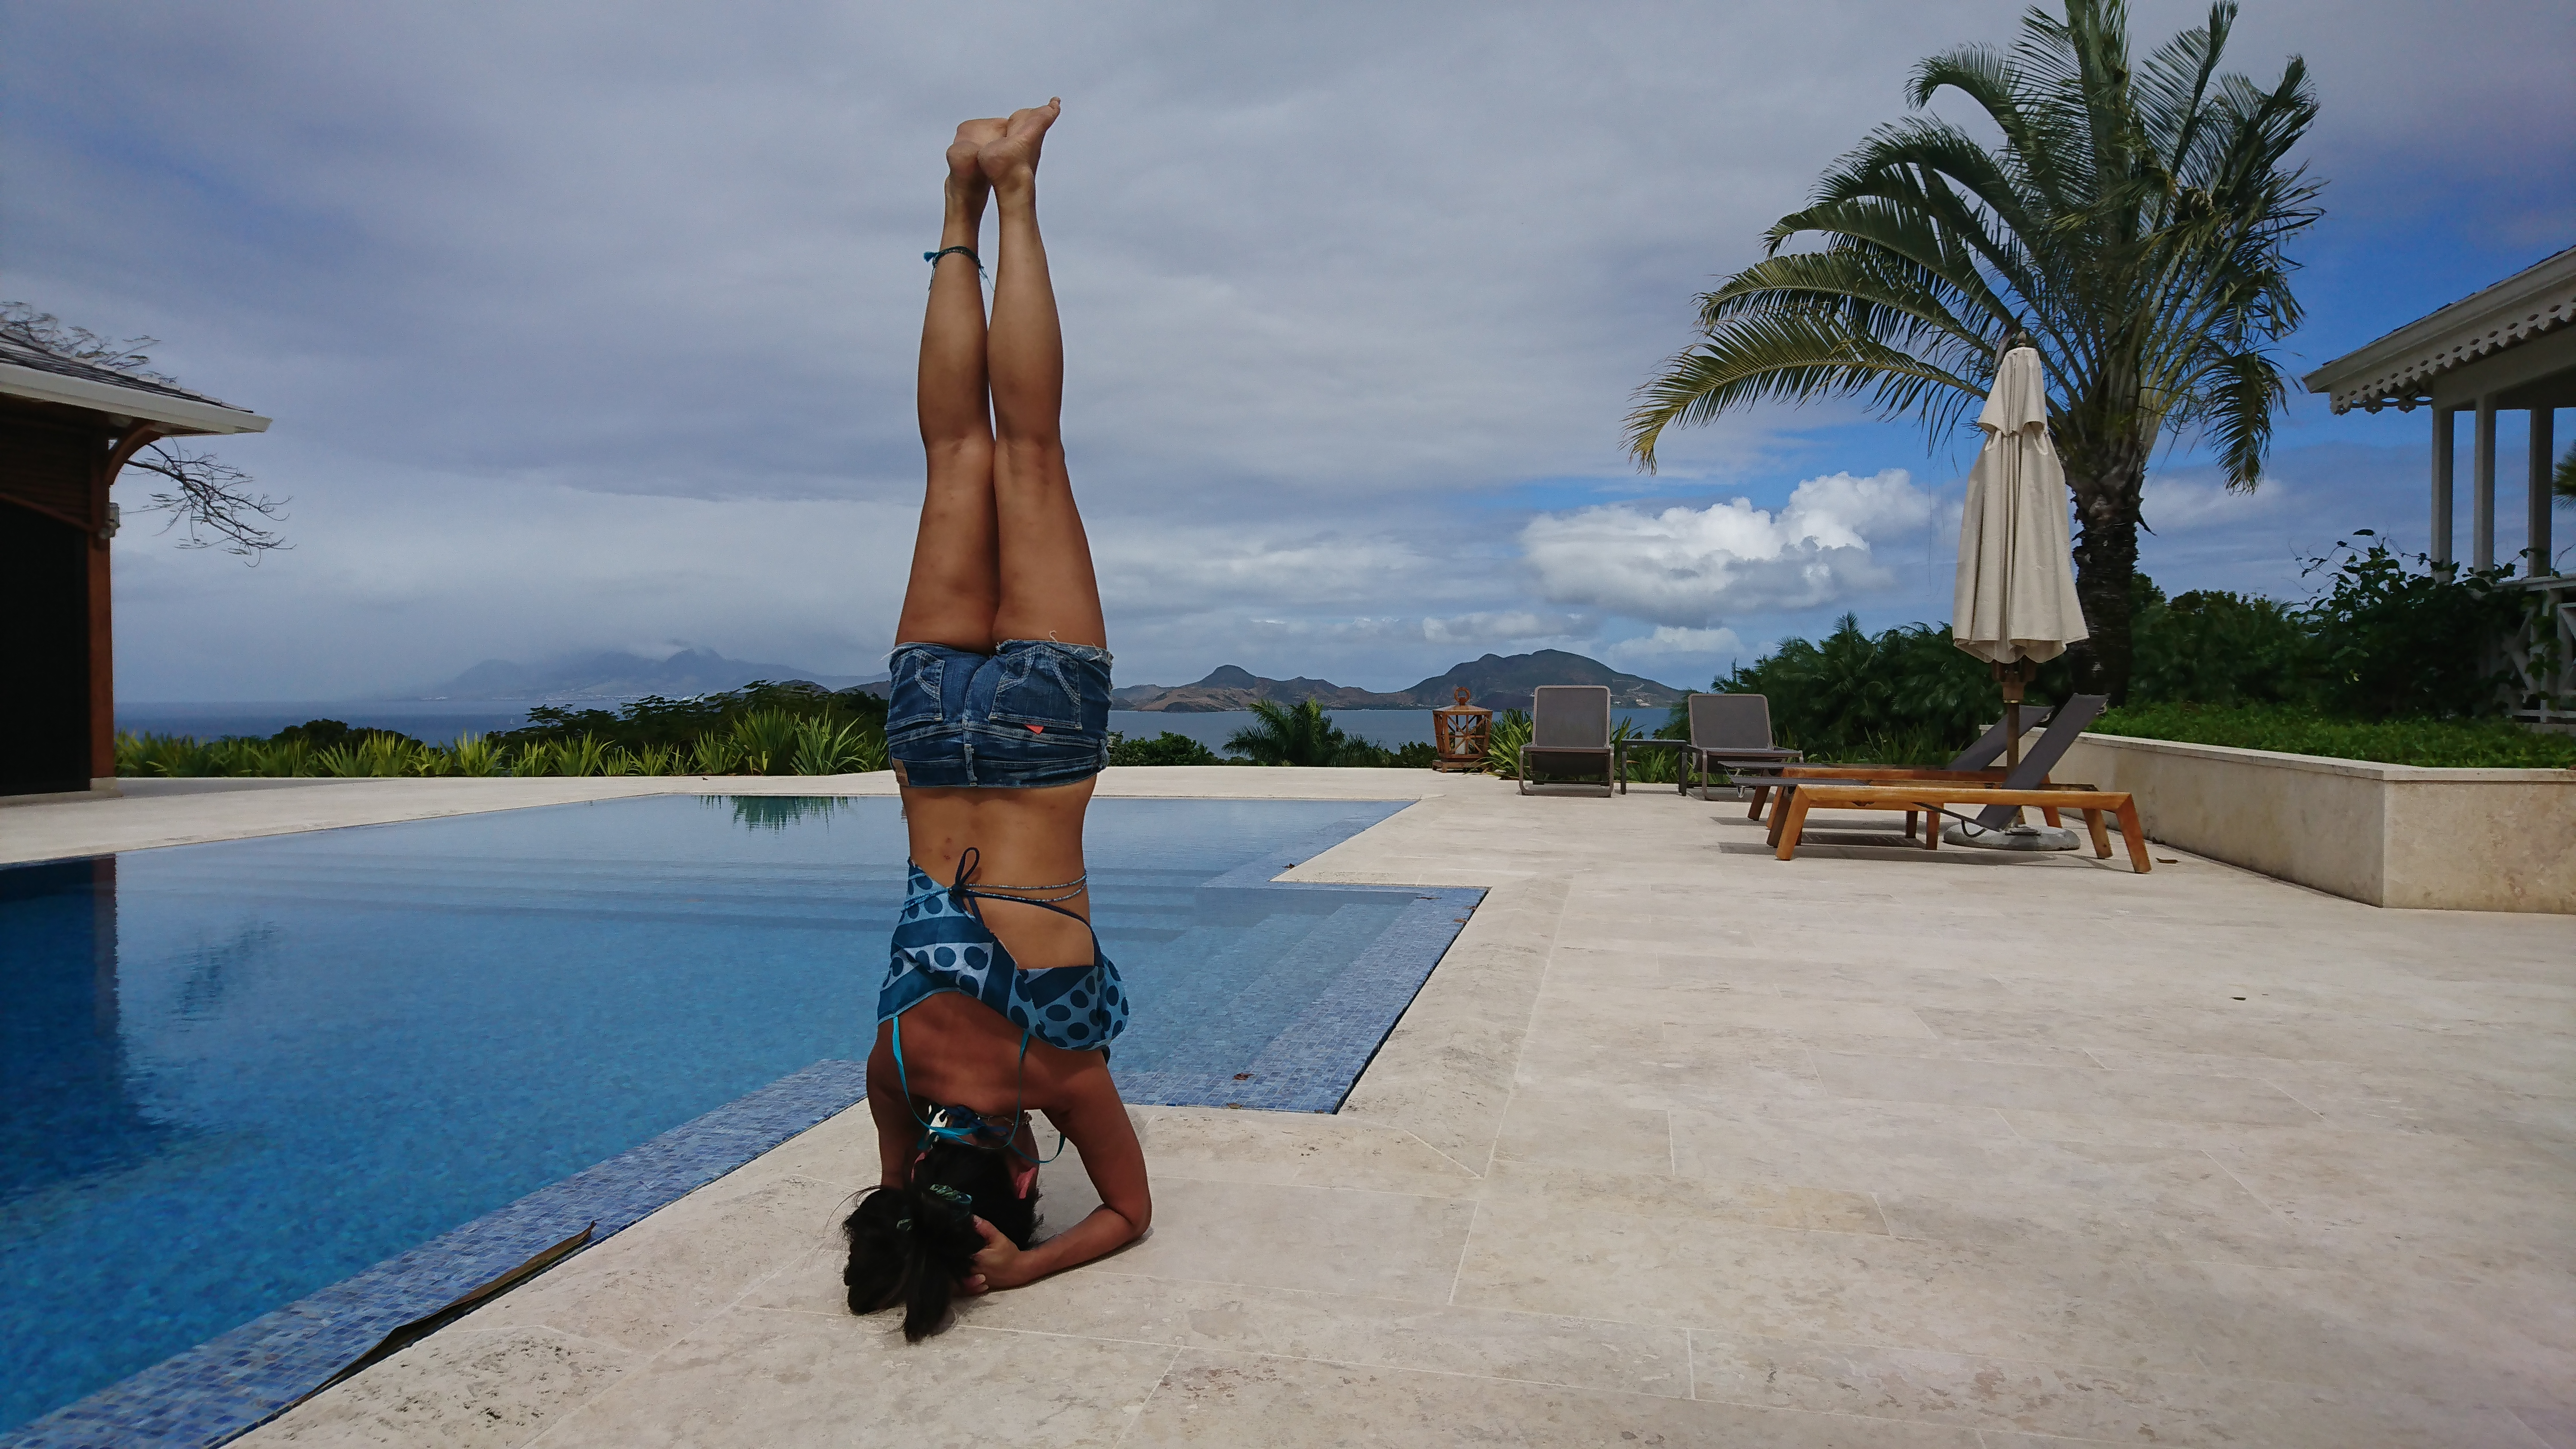 Pool side head stand in St Kitts & Nevis